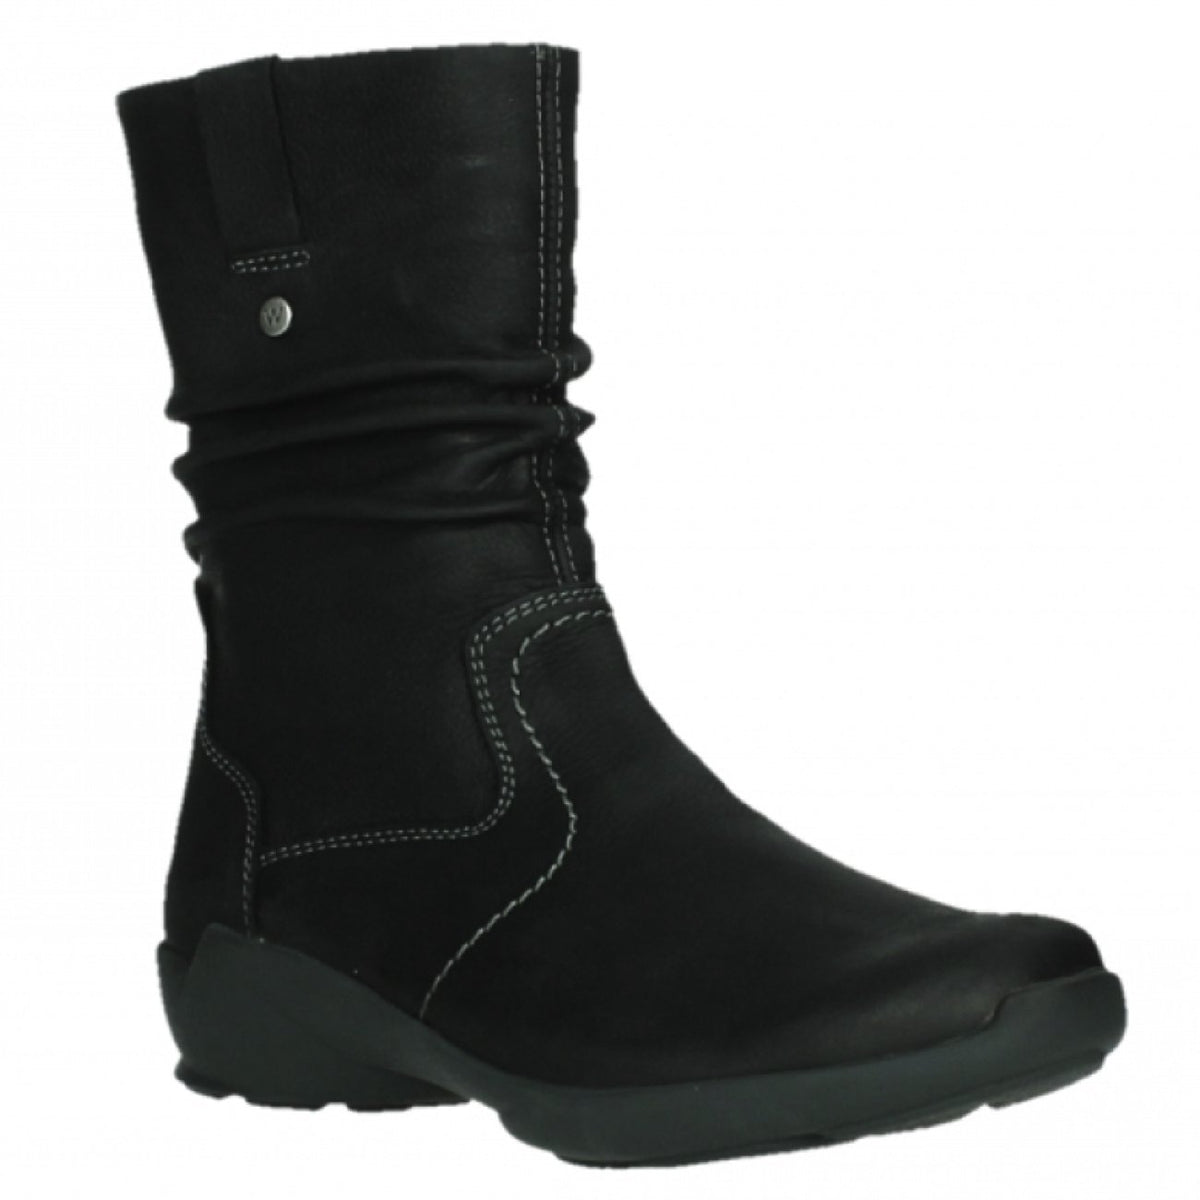 Wolky, Luna WP, Boot, Antique Nubuck, Ladies, Black Boots Wolky Black 36